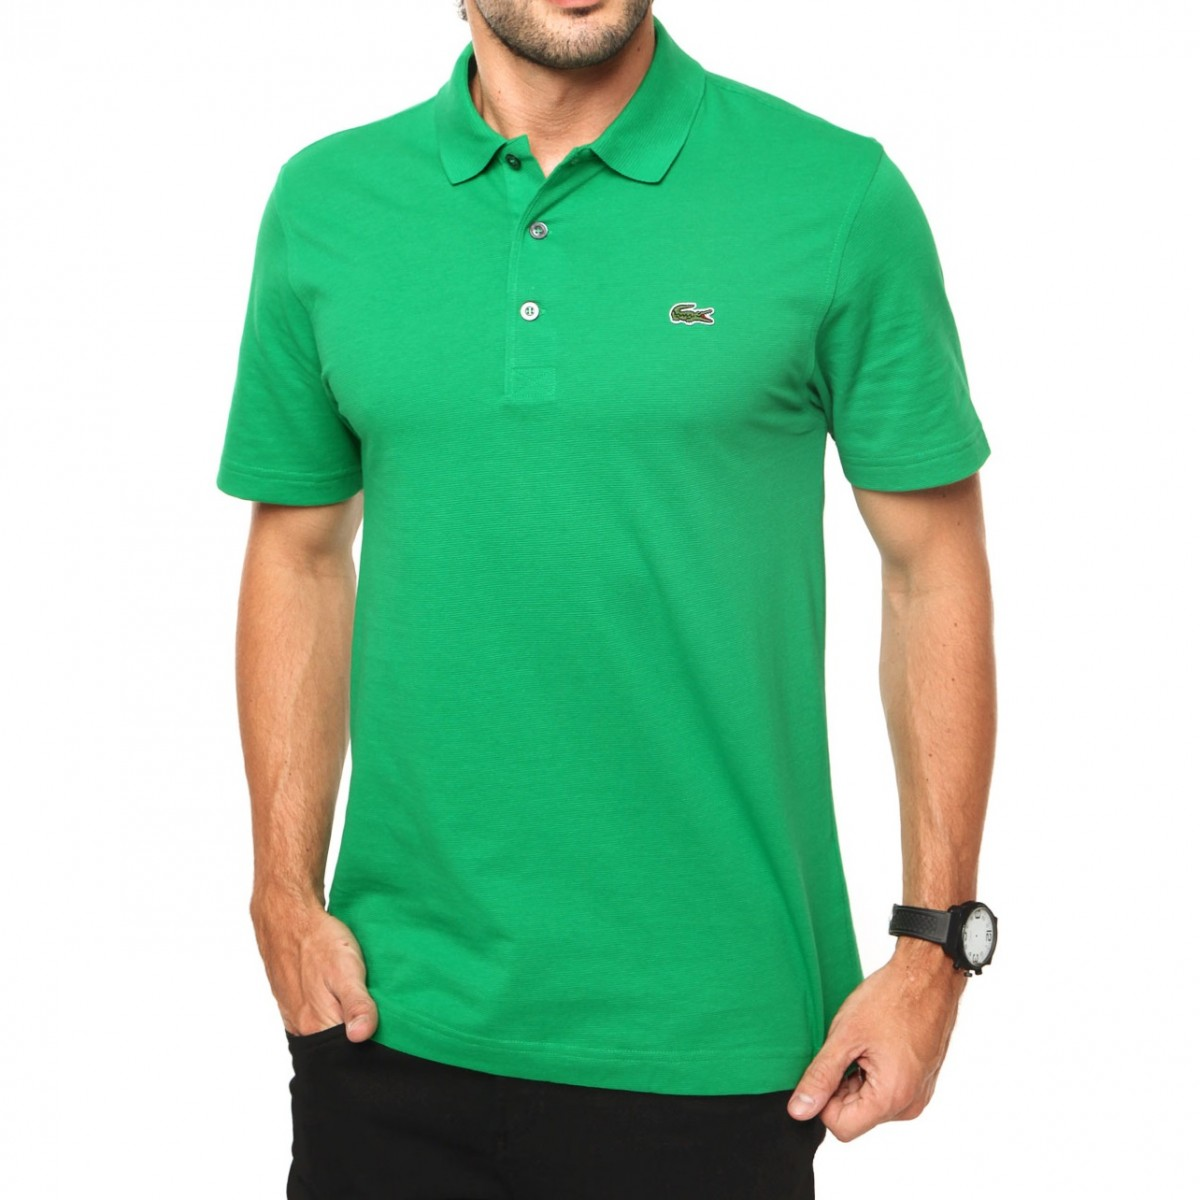 50bedde6043 Camisa Polo Lacoste Masculino